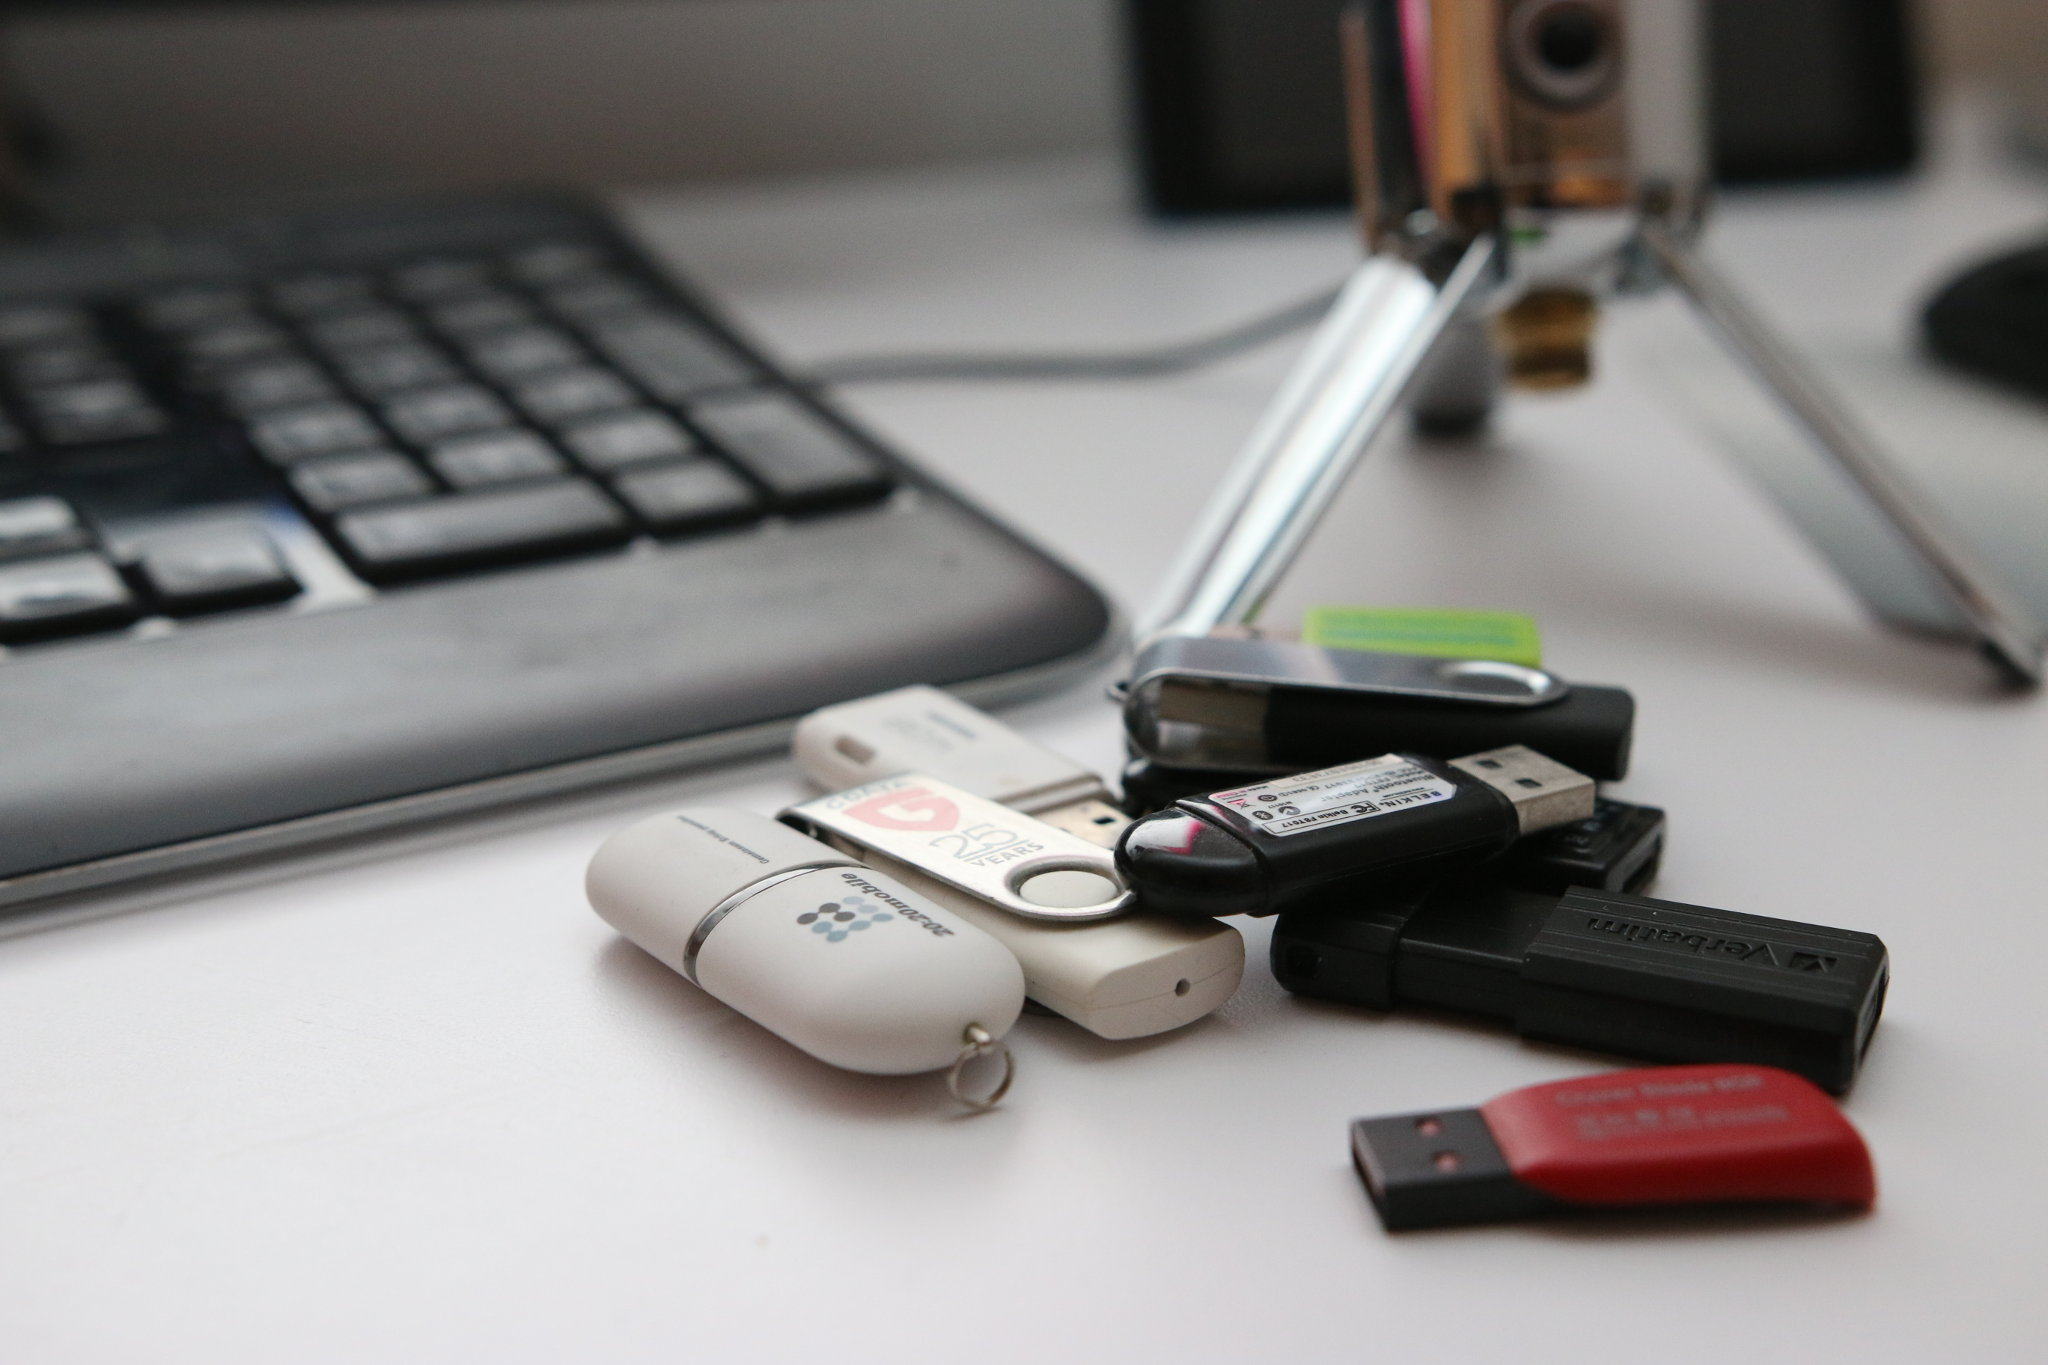 how to delete linux from usb stick